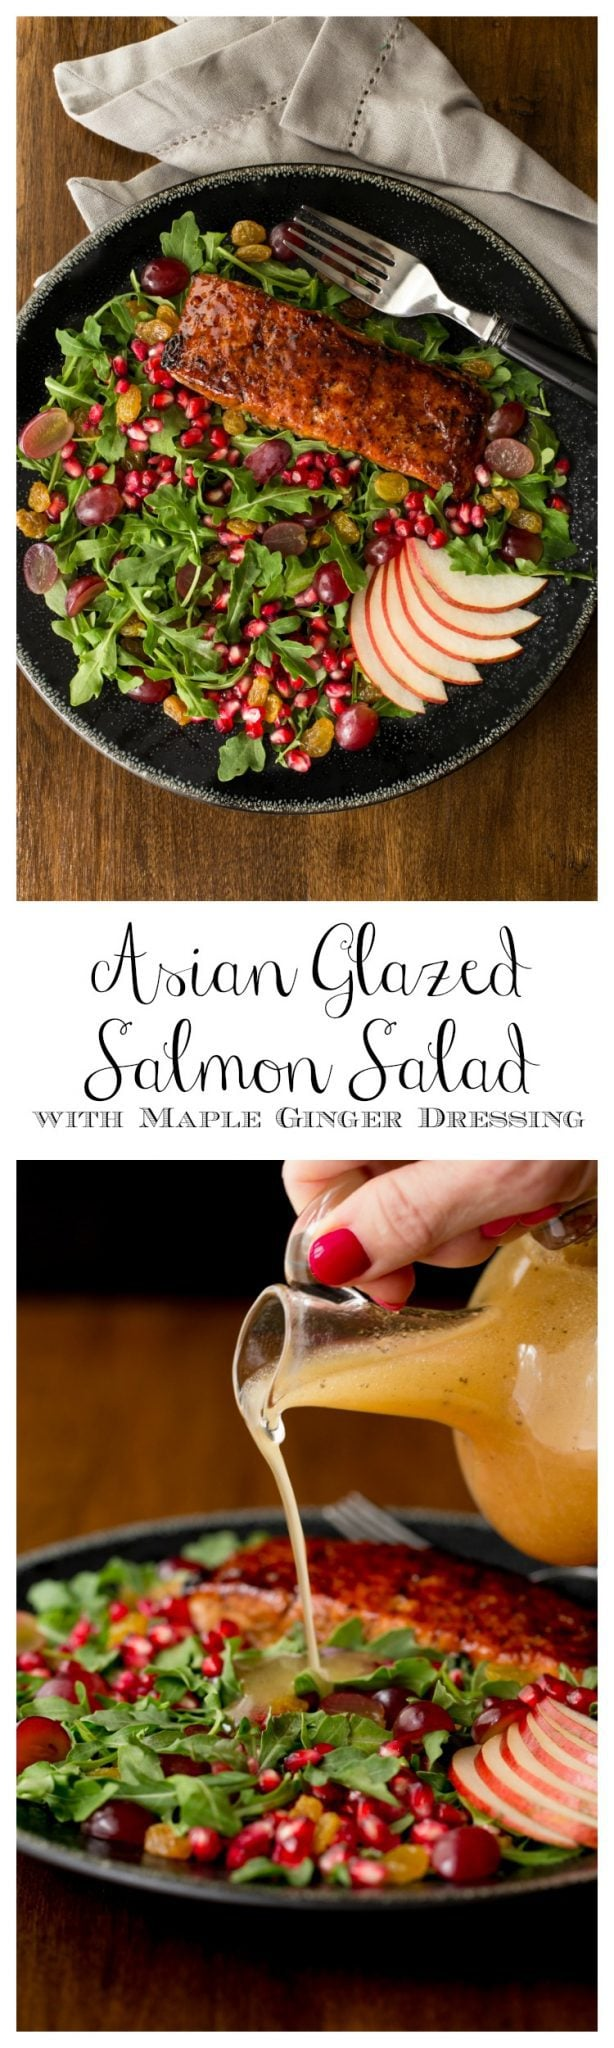 Asian Glazed Salmon Salad - a beautiful. healthy salad. The dressing is transformed to a delicious Asian glaze for the salmon.